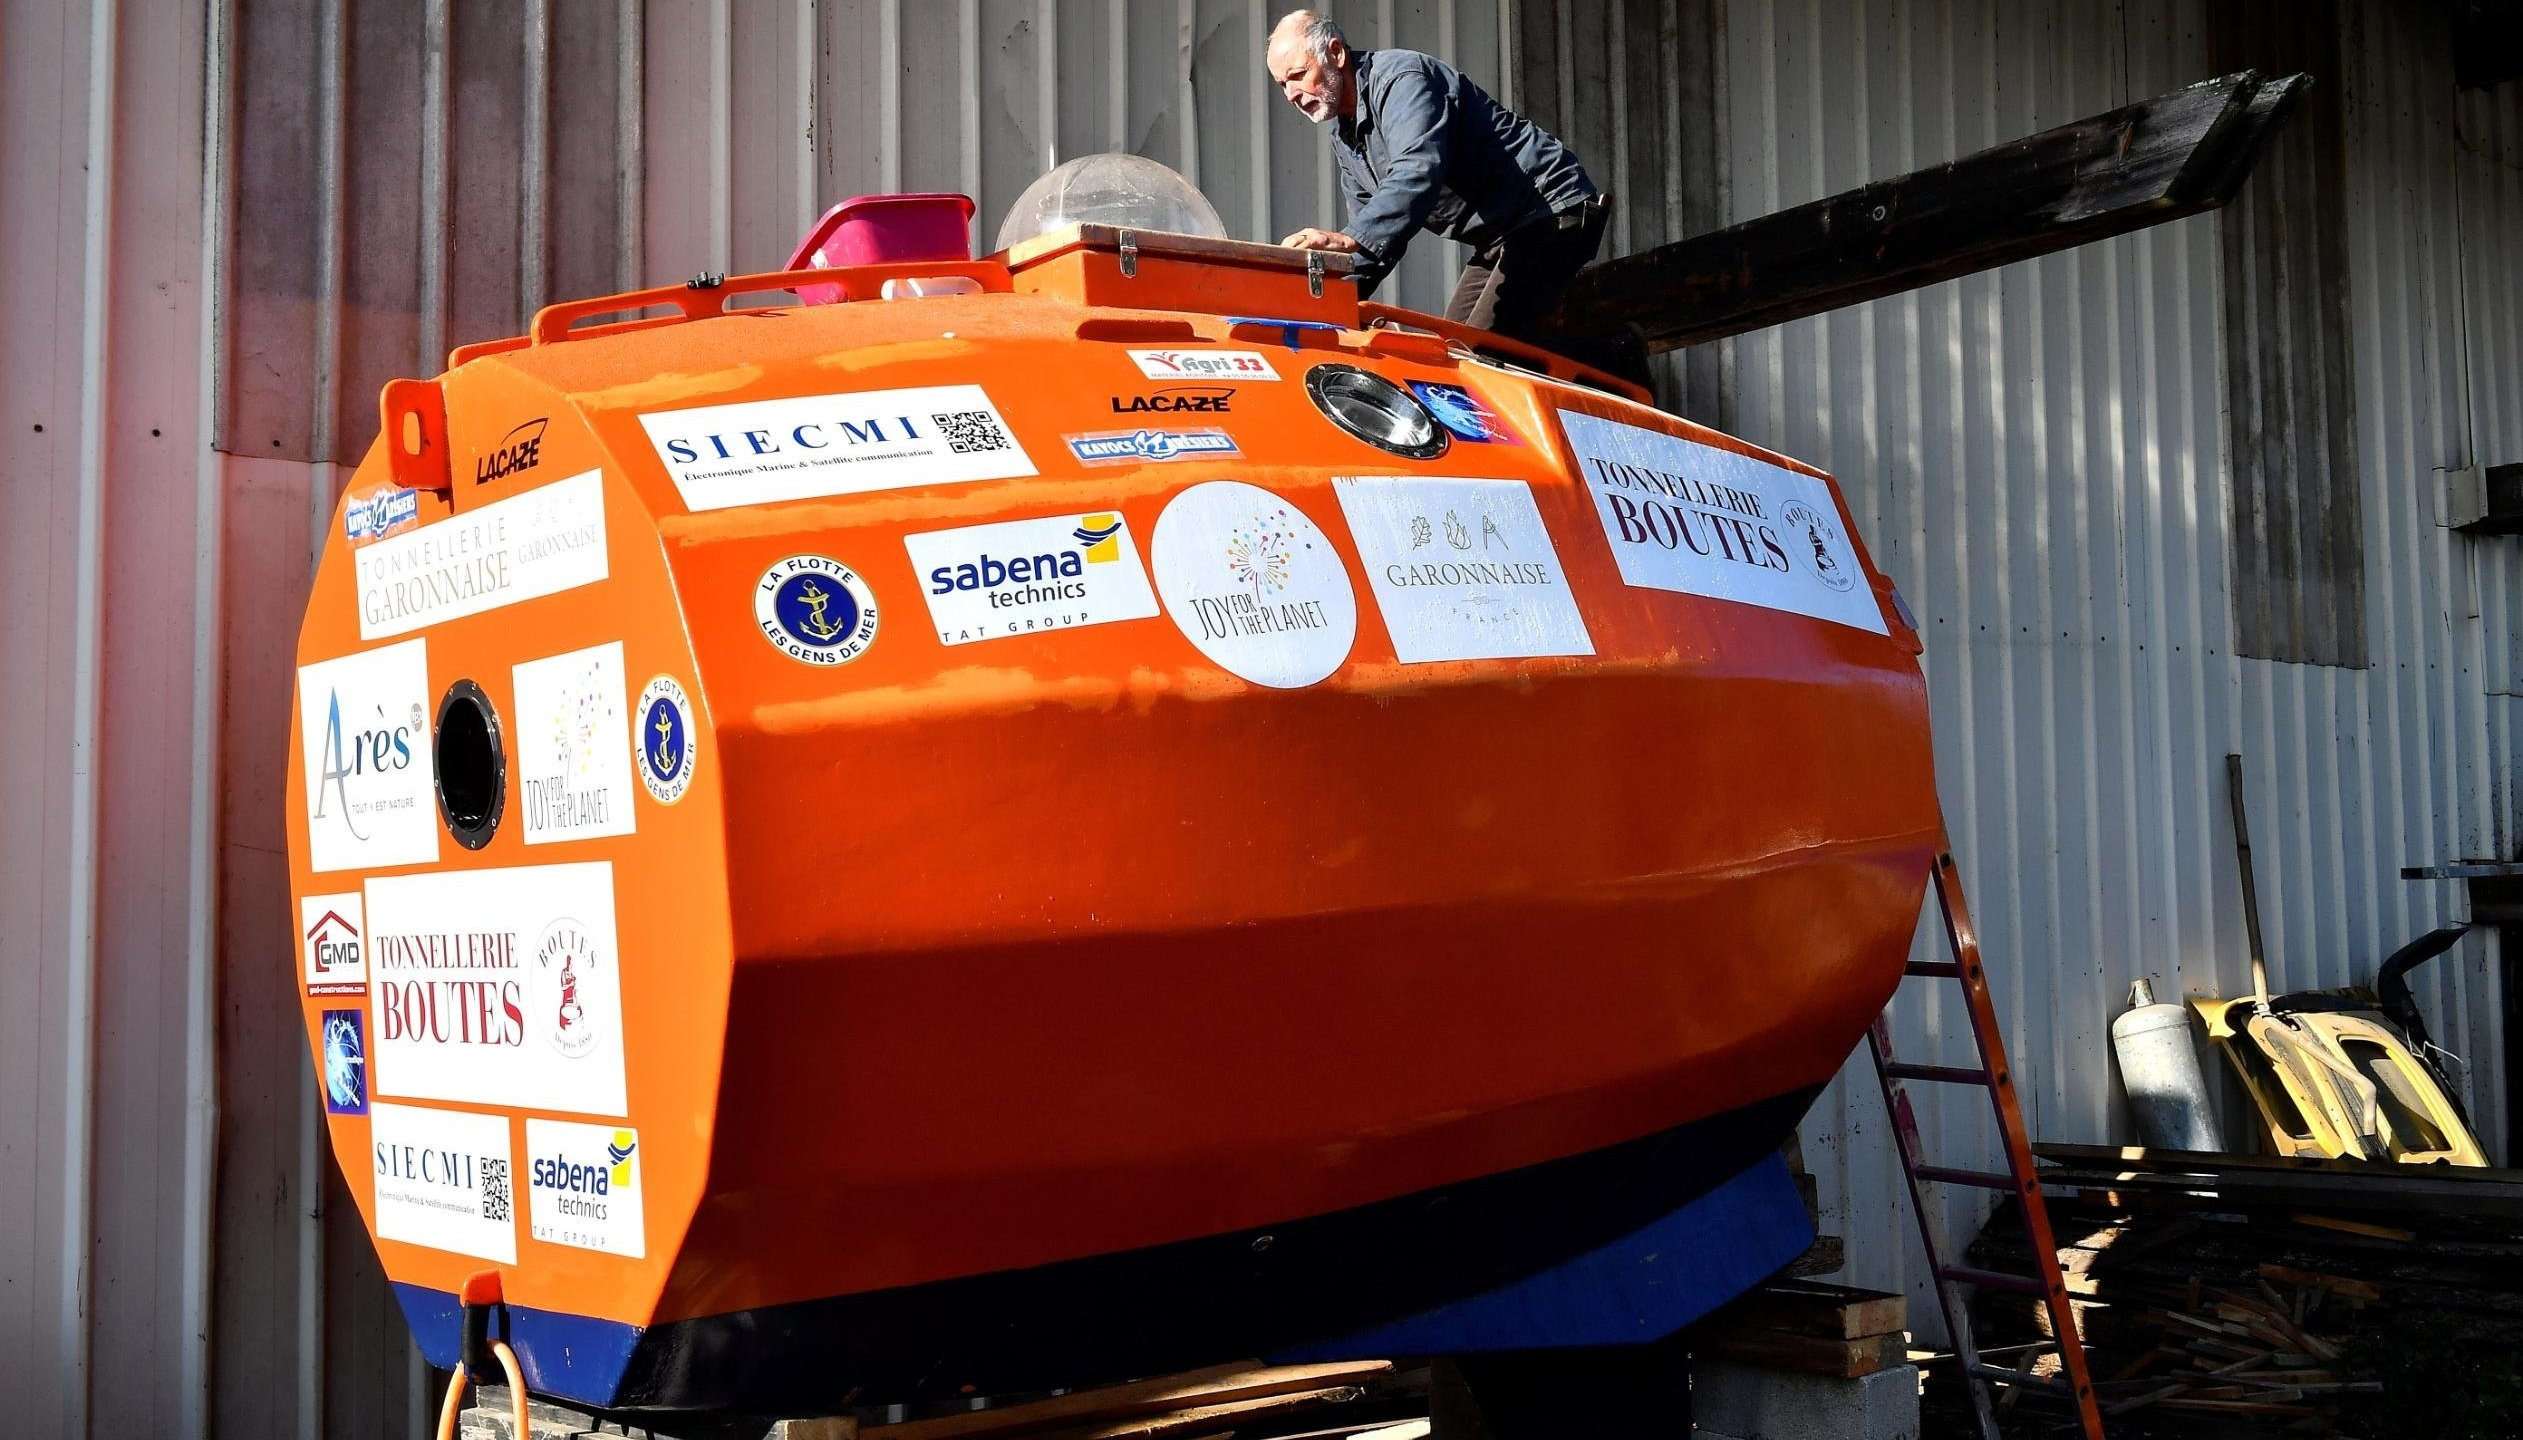 A 71-year-old Frenchman has set sail across the Atlantic Ocean in a large orange barrel in late December 2018, hoping to float to the Caribbean by the end of March 2019. (Credit: Georges Gobet/AFP/Getty Images via CNN)